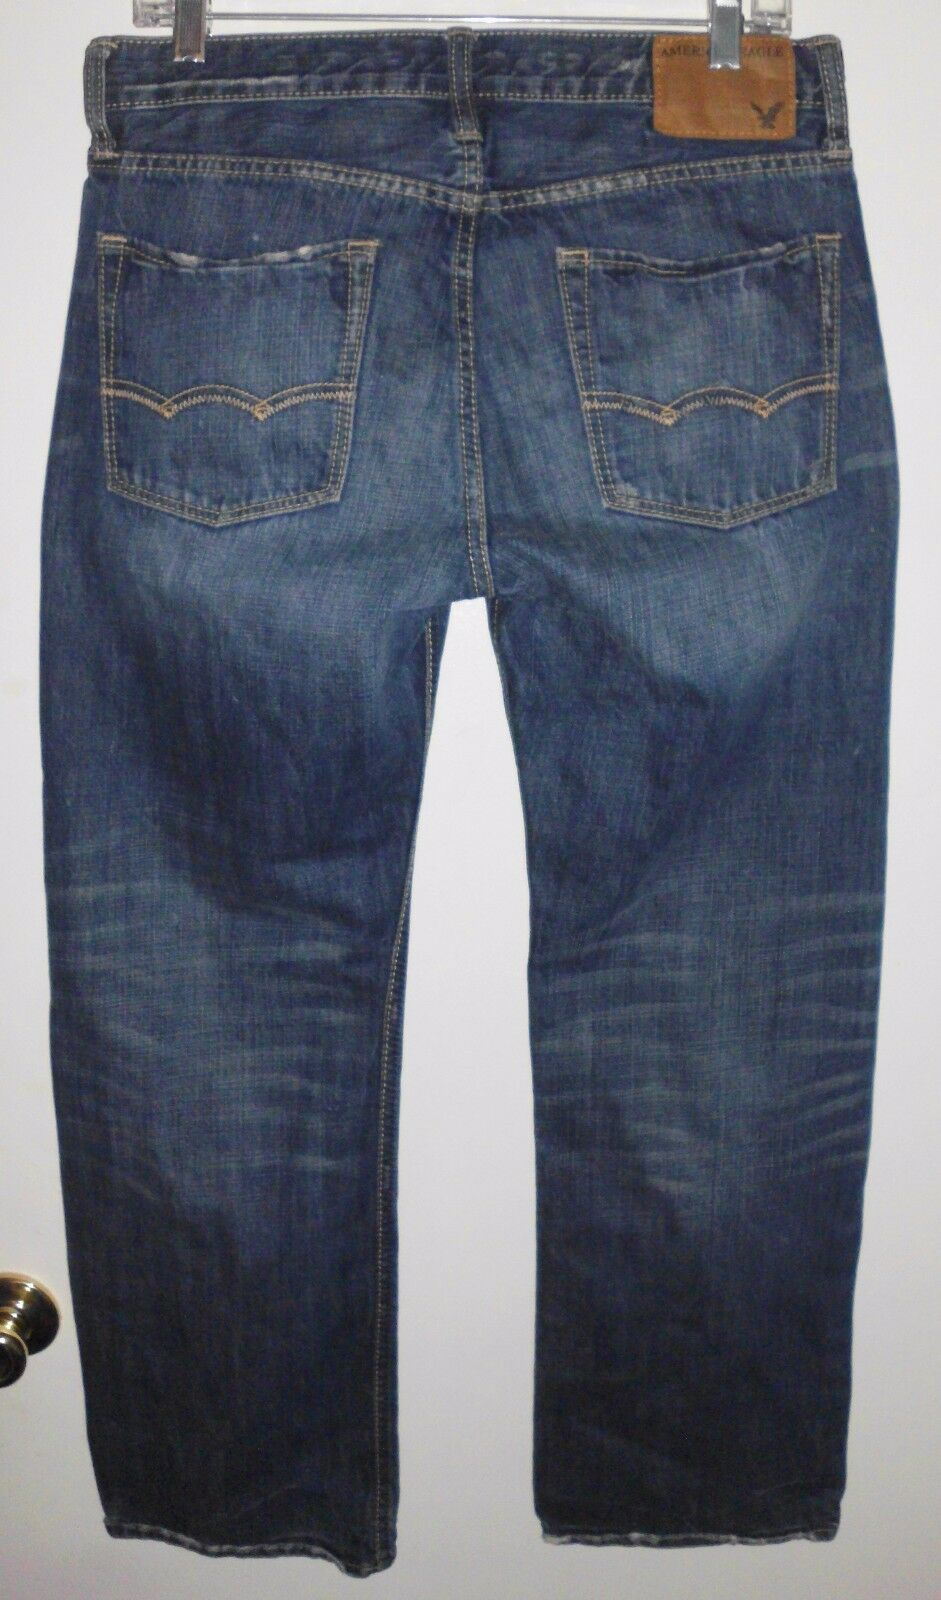 AMERICAN EAGLE Jeans Sz 30 Men's Distressed Low Rise Boot 100% Cotton bluee